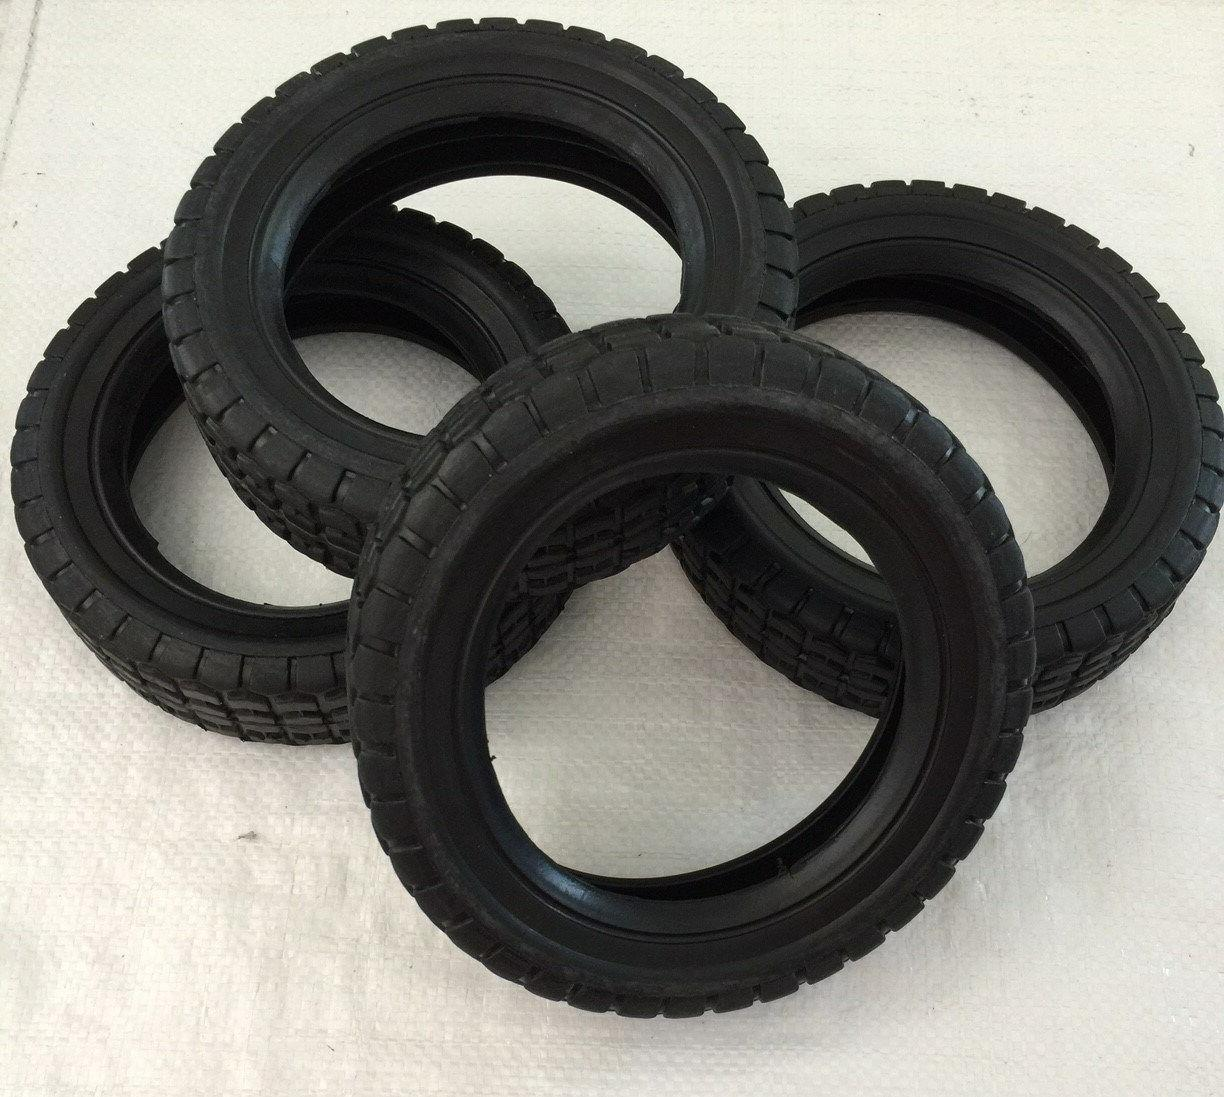 """Mclane Edger and Mower Replacement 8""""Tire  4 pack USA!"""